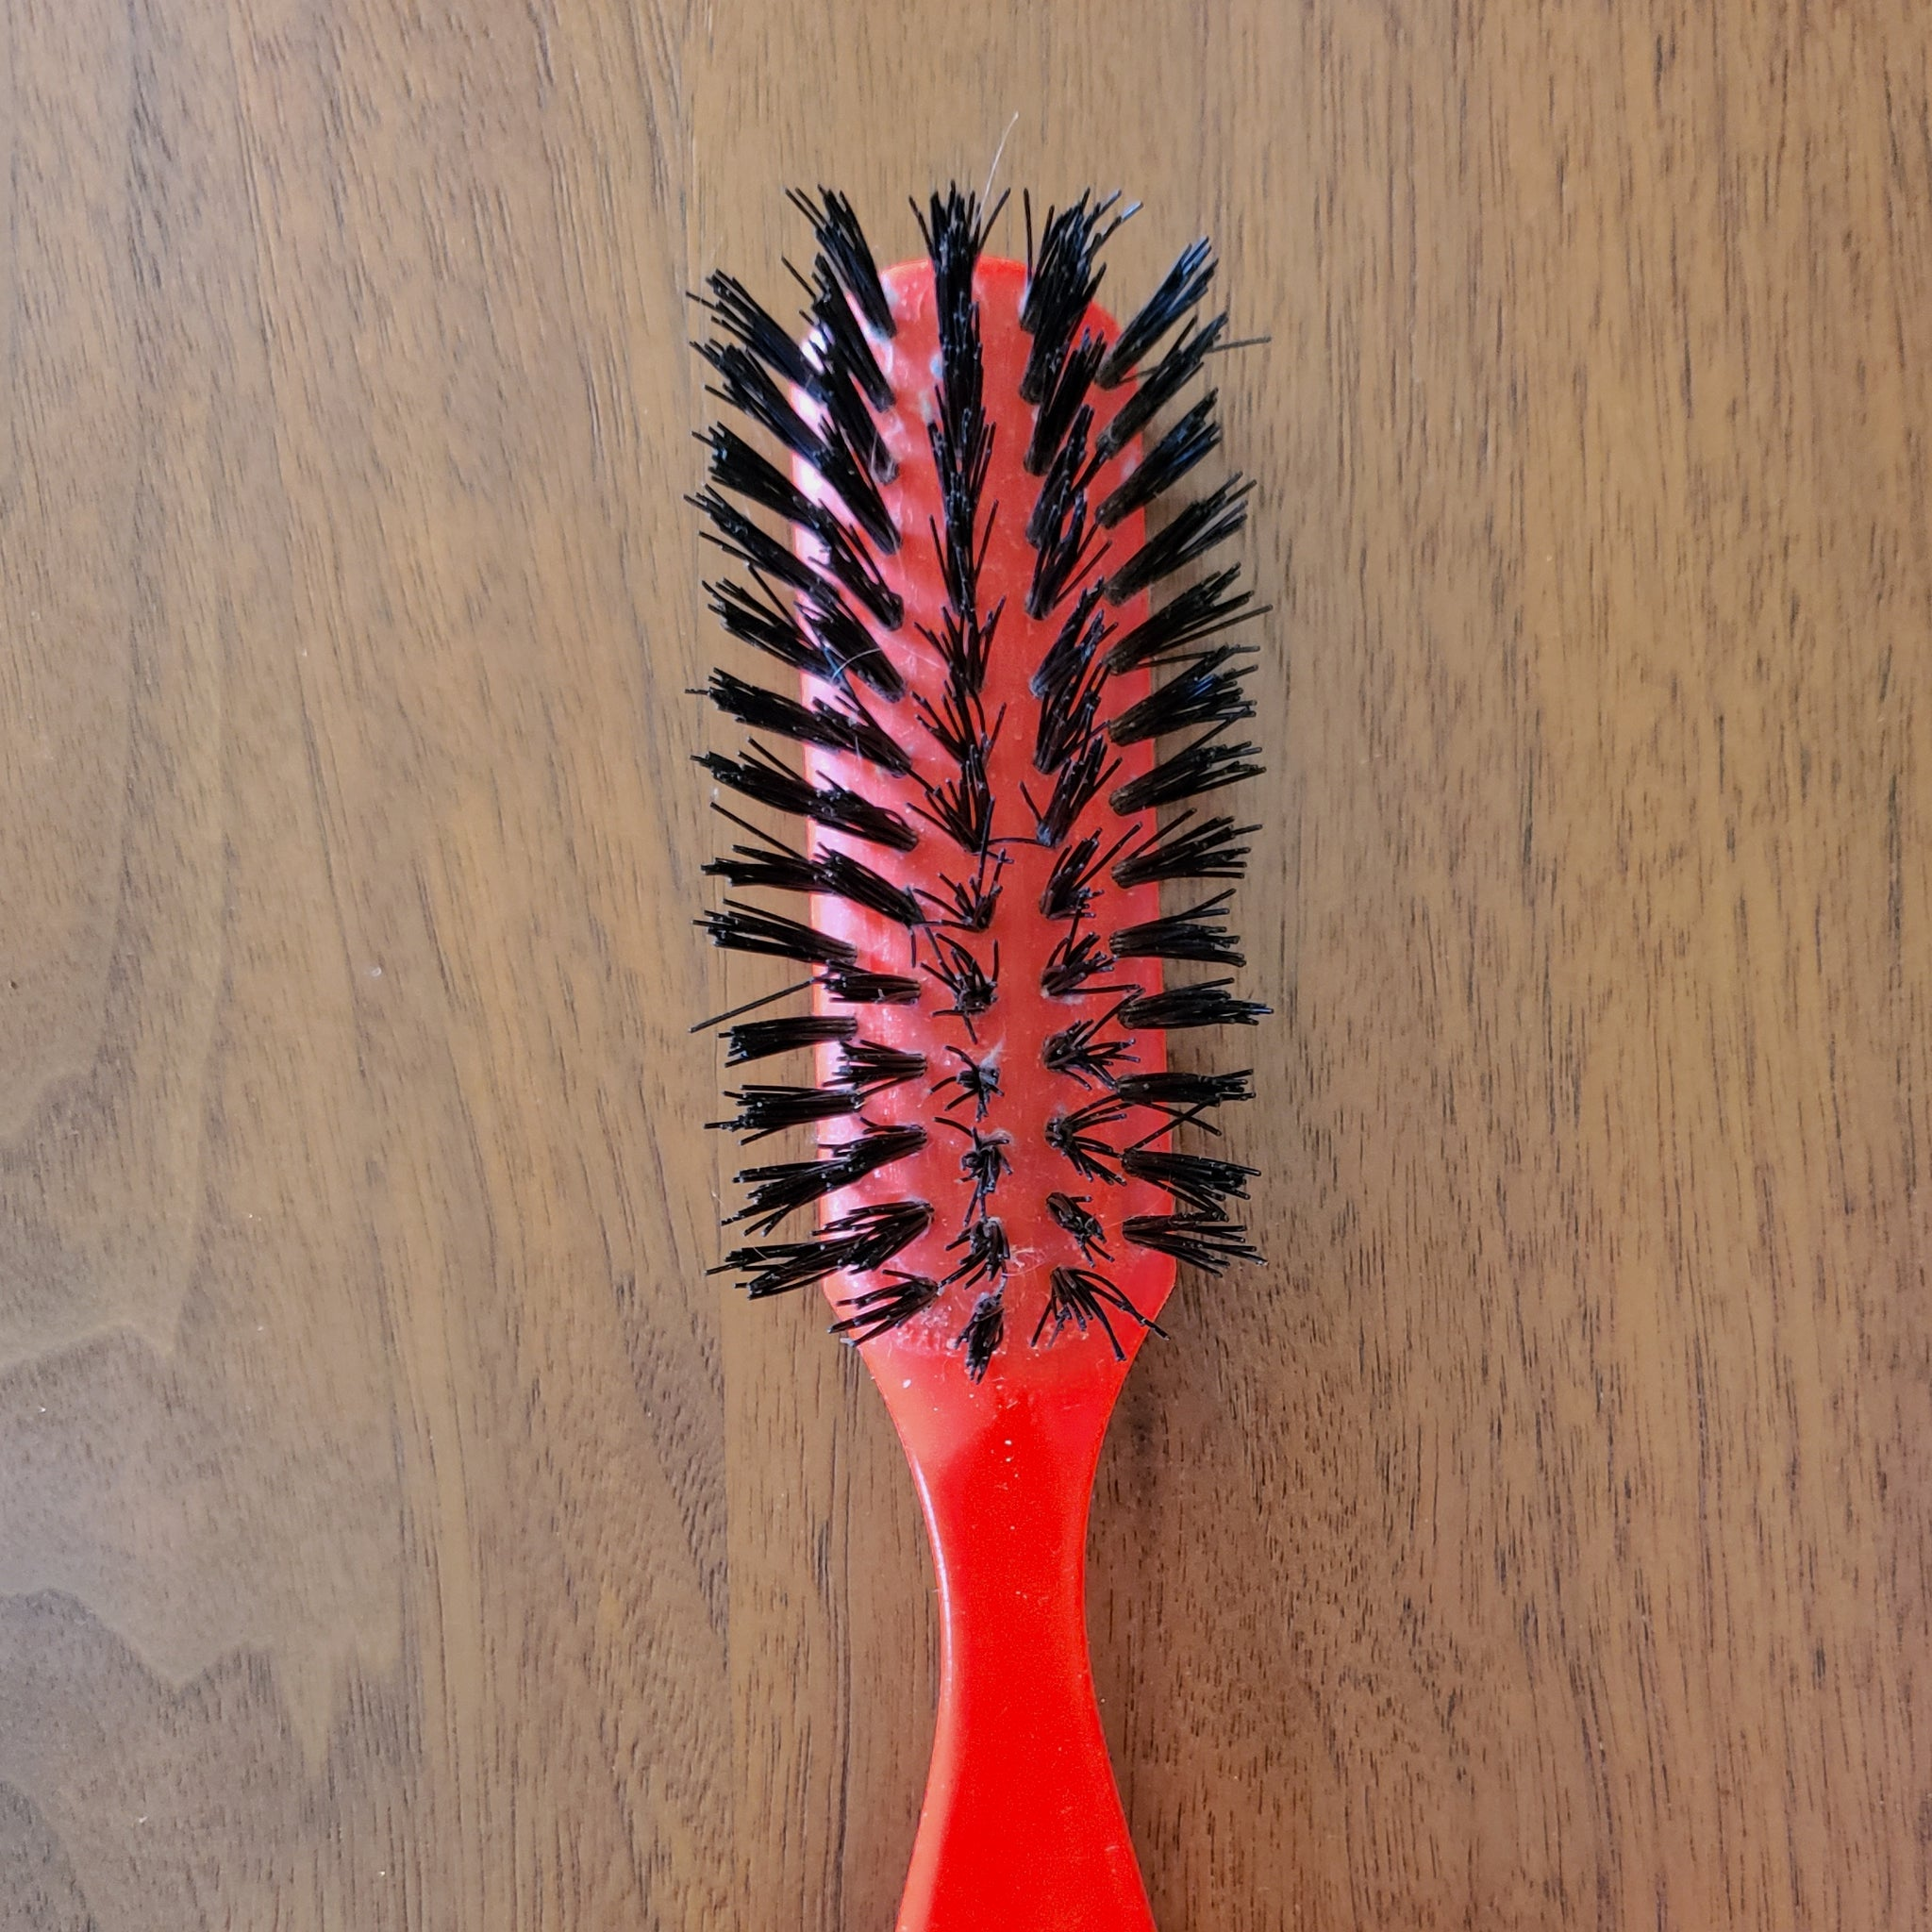 The History of the Red Brush